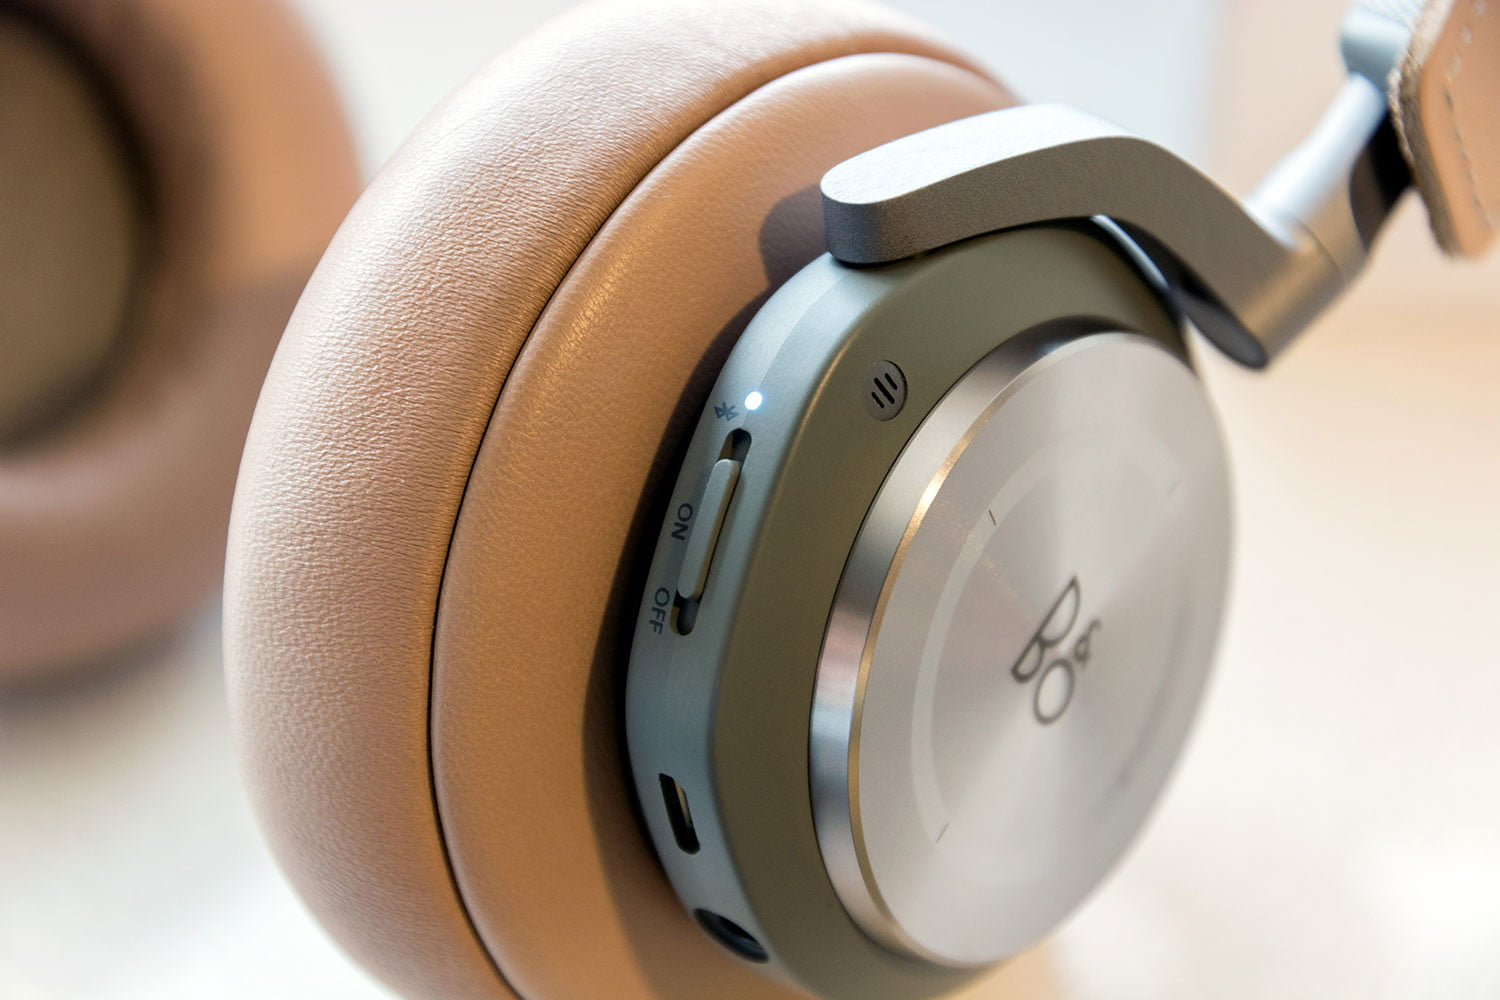 bang olufsen beoplay h9 headphones review digital trends. Black Bedroom Furniture Sets. Home Design Ideas